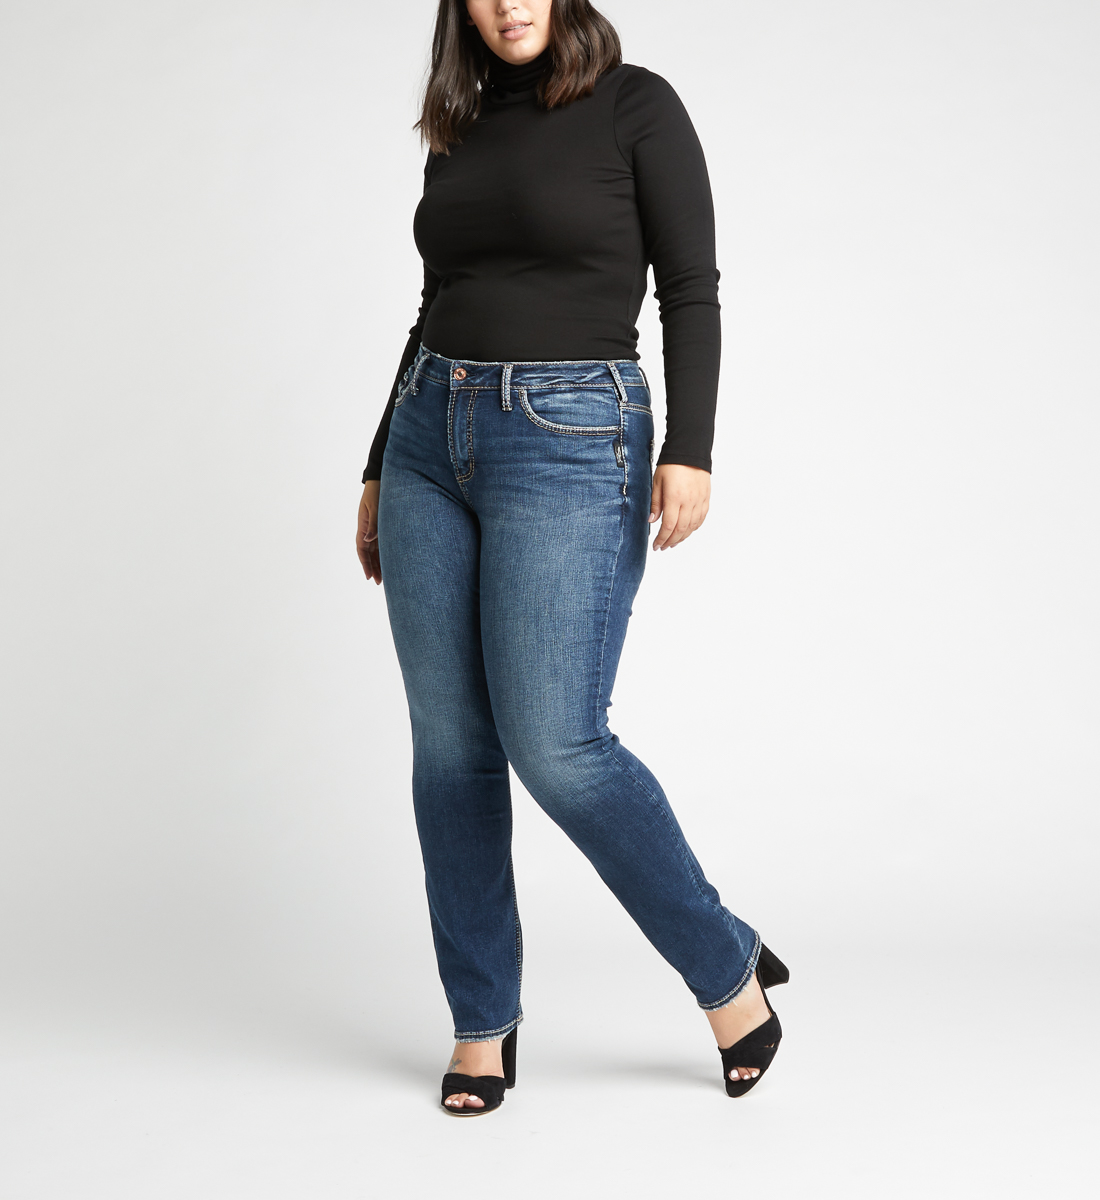 Avery High Rise Straight Leg Plus Size Jeans Alt Image 1